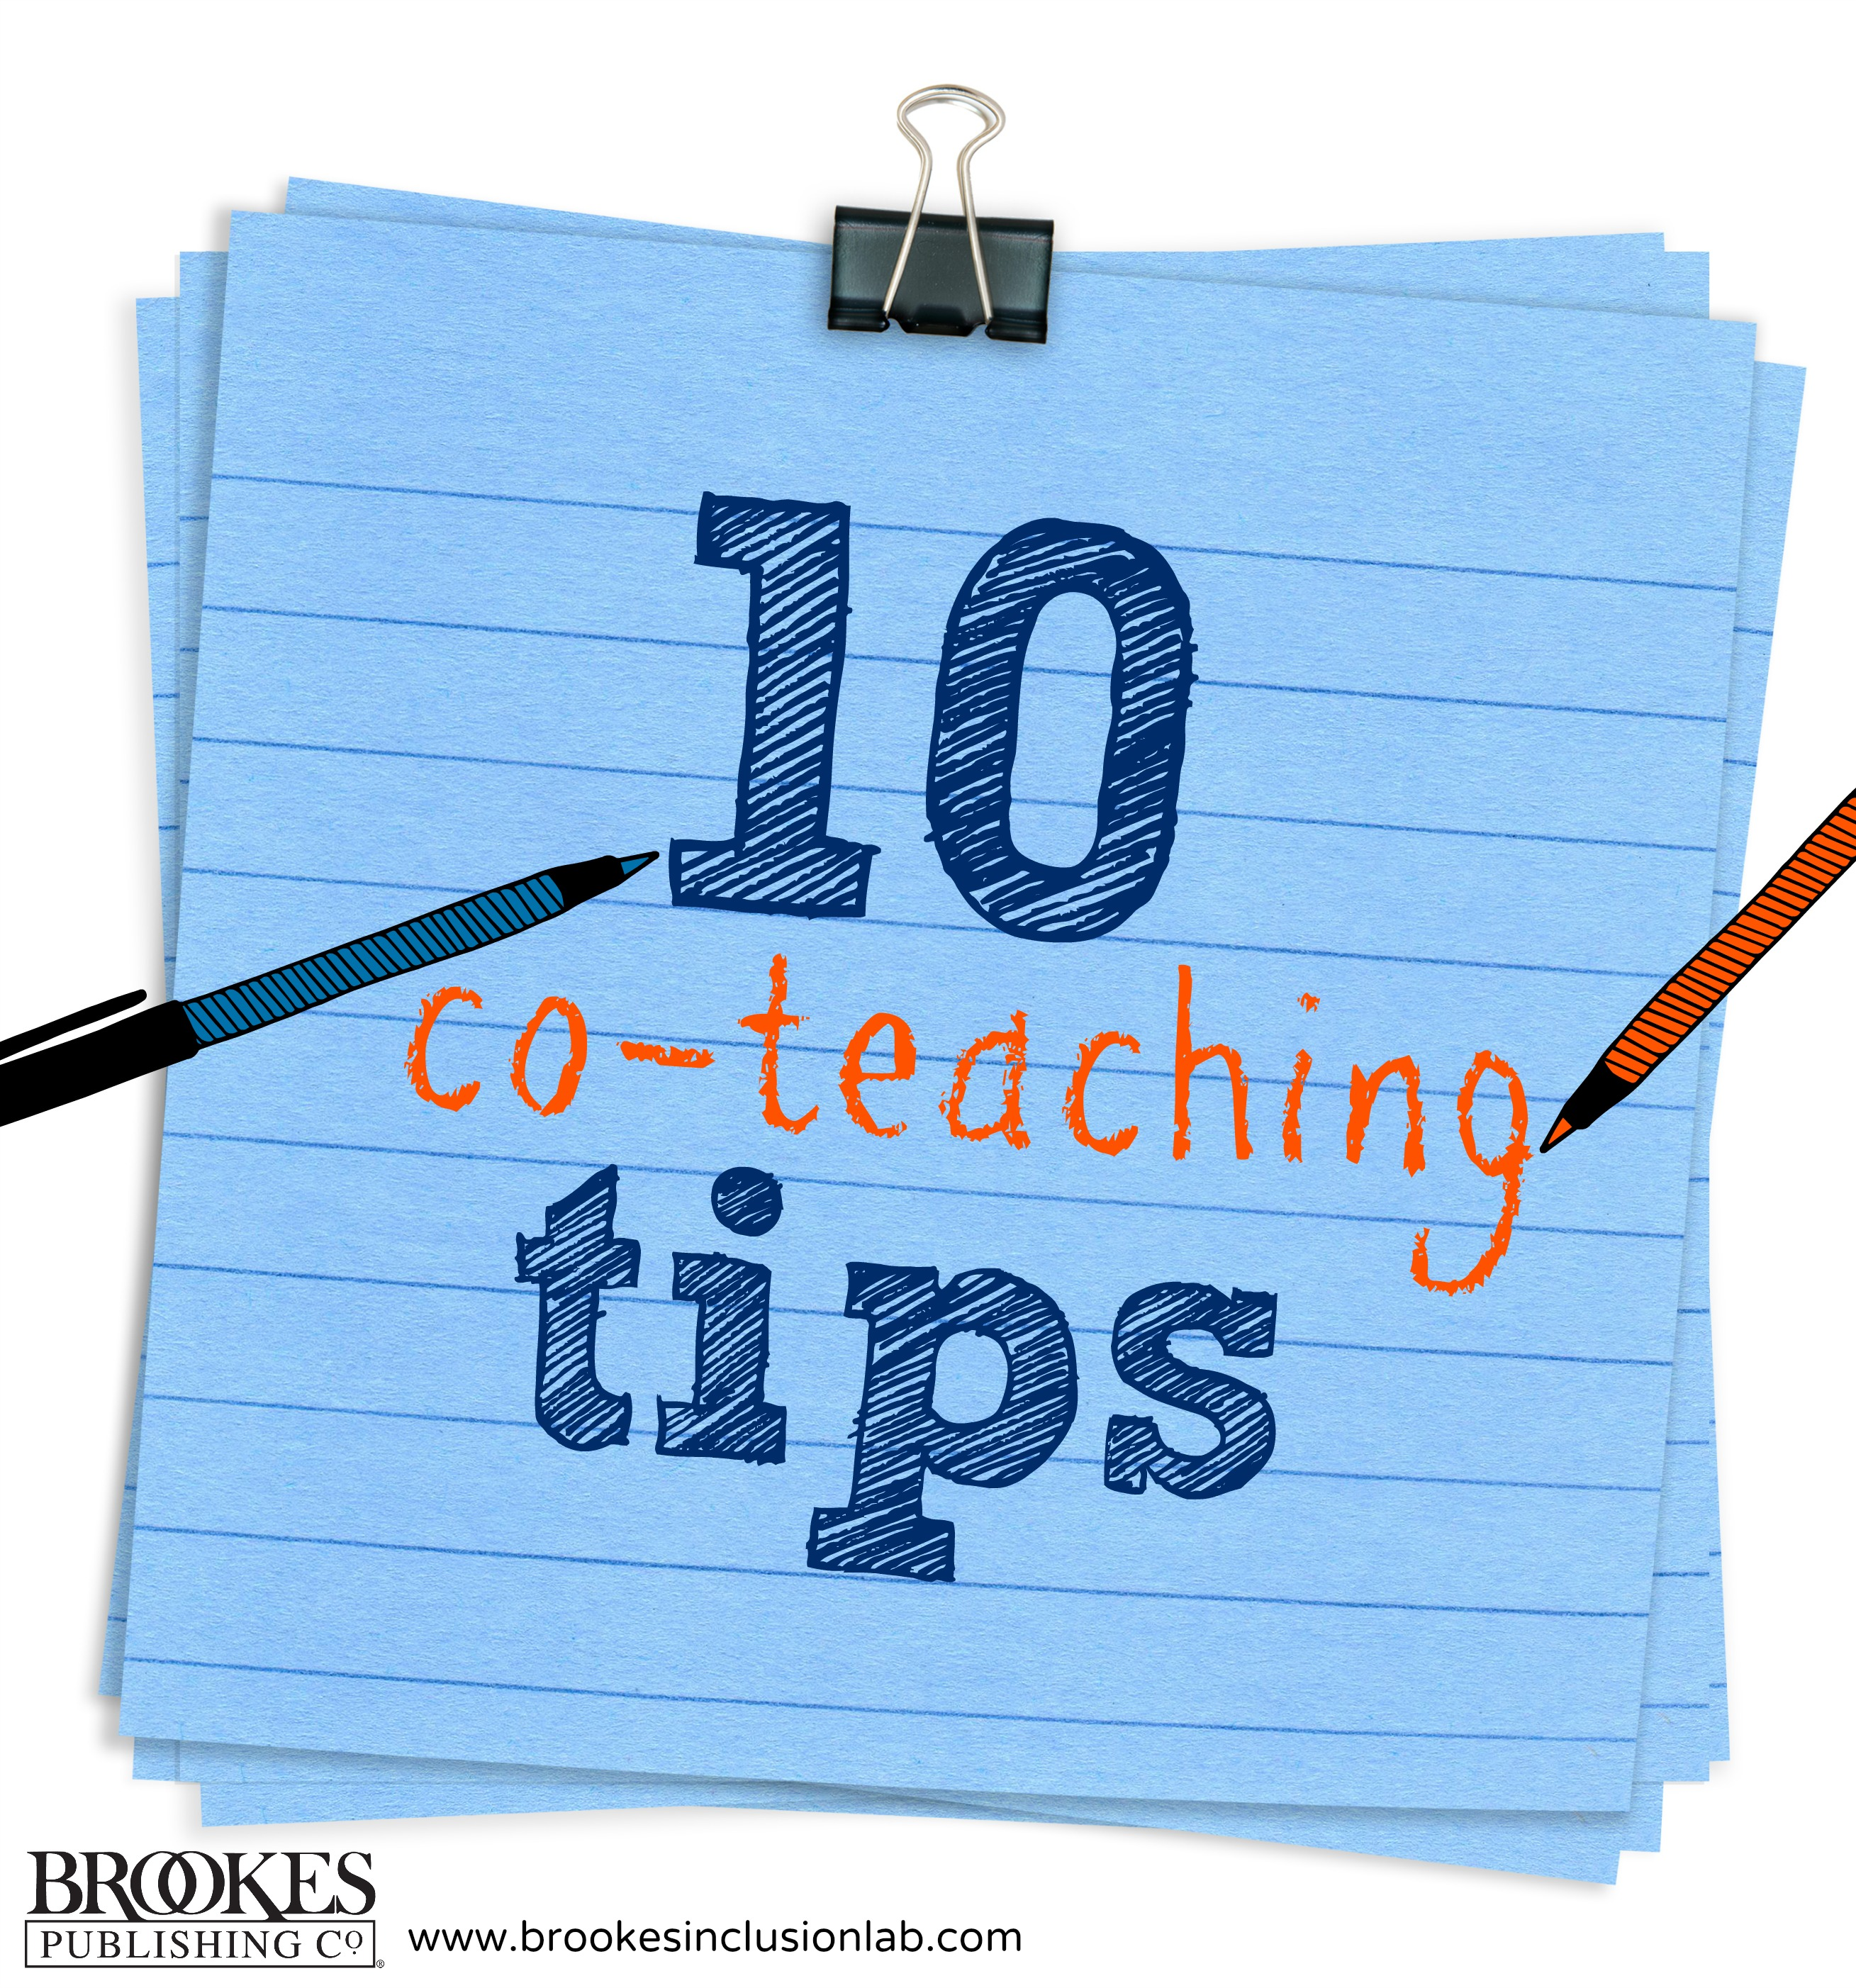 10 co-teaching tips brookes publishing Potts